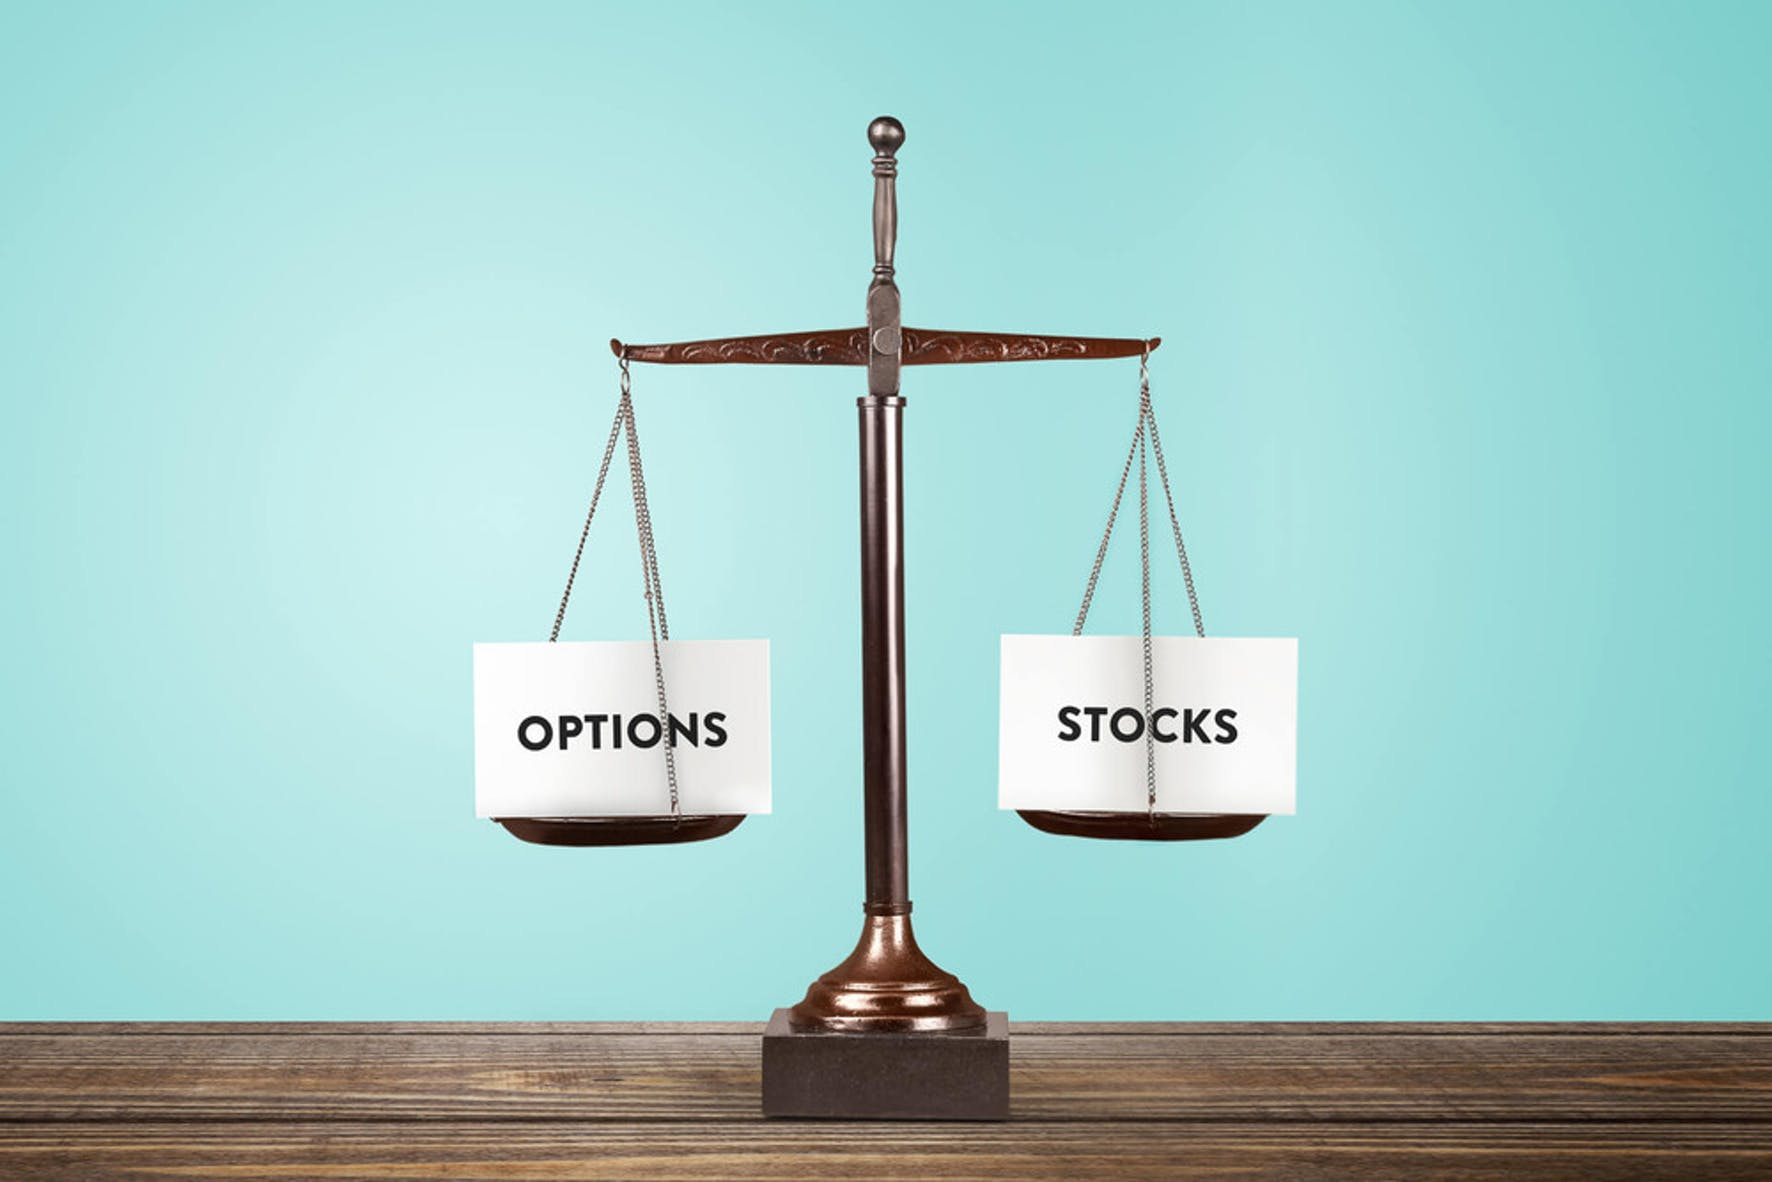 options vs stocks weighted on a scale